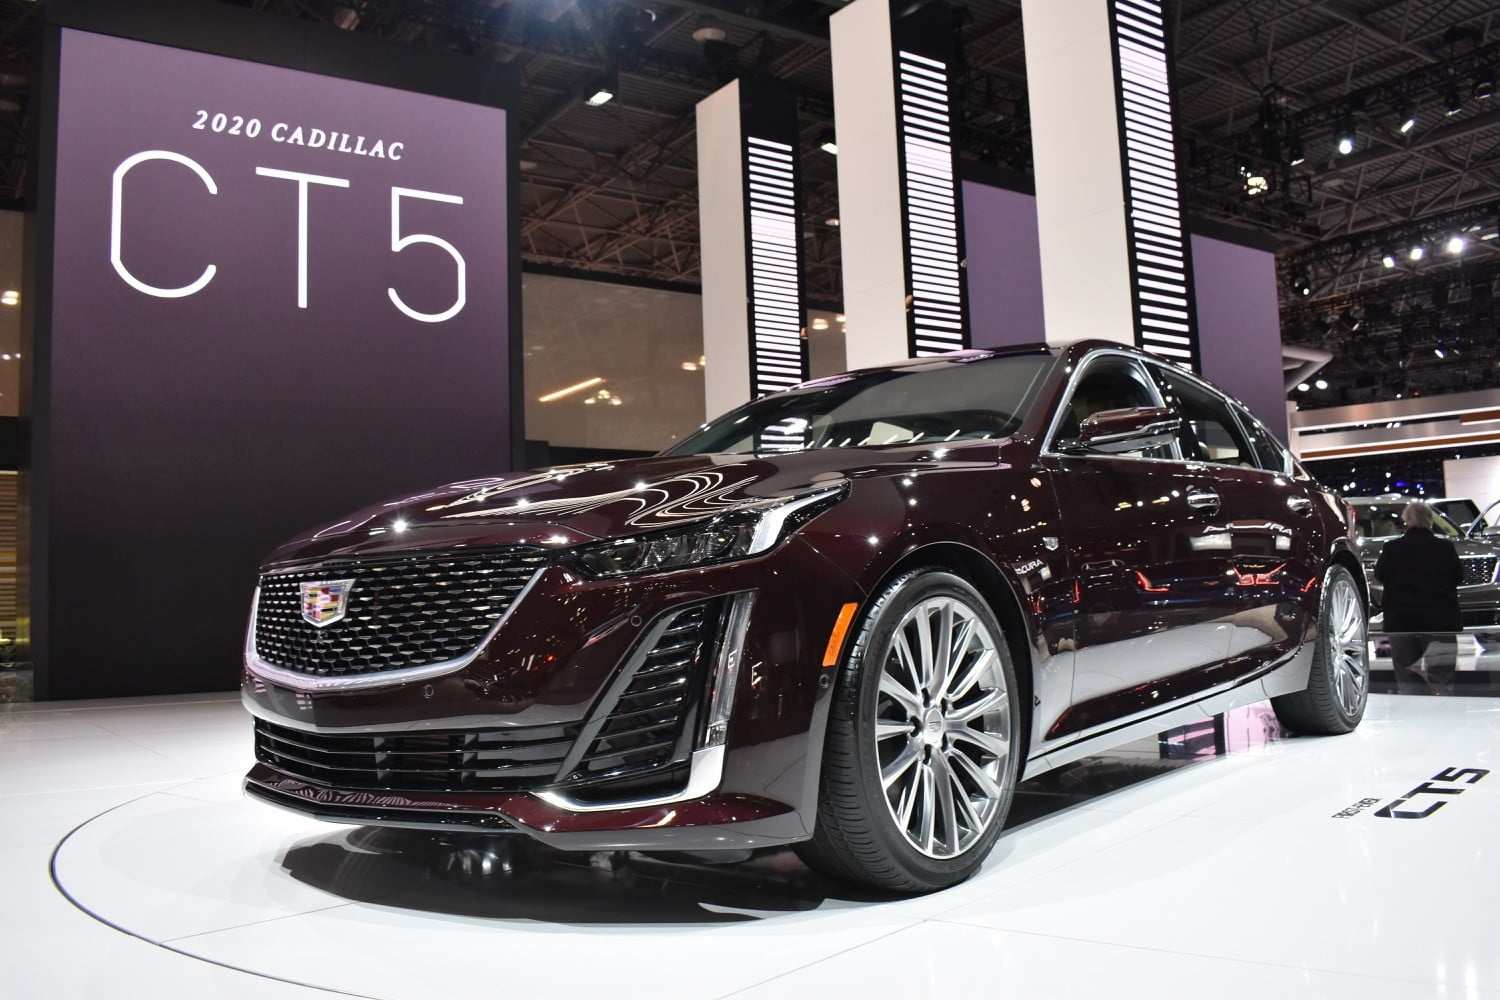 86 New Cadillac New Cars For 2020 Wallpaper